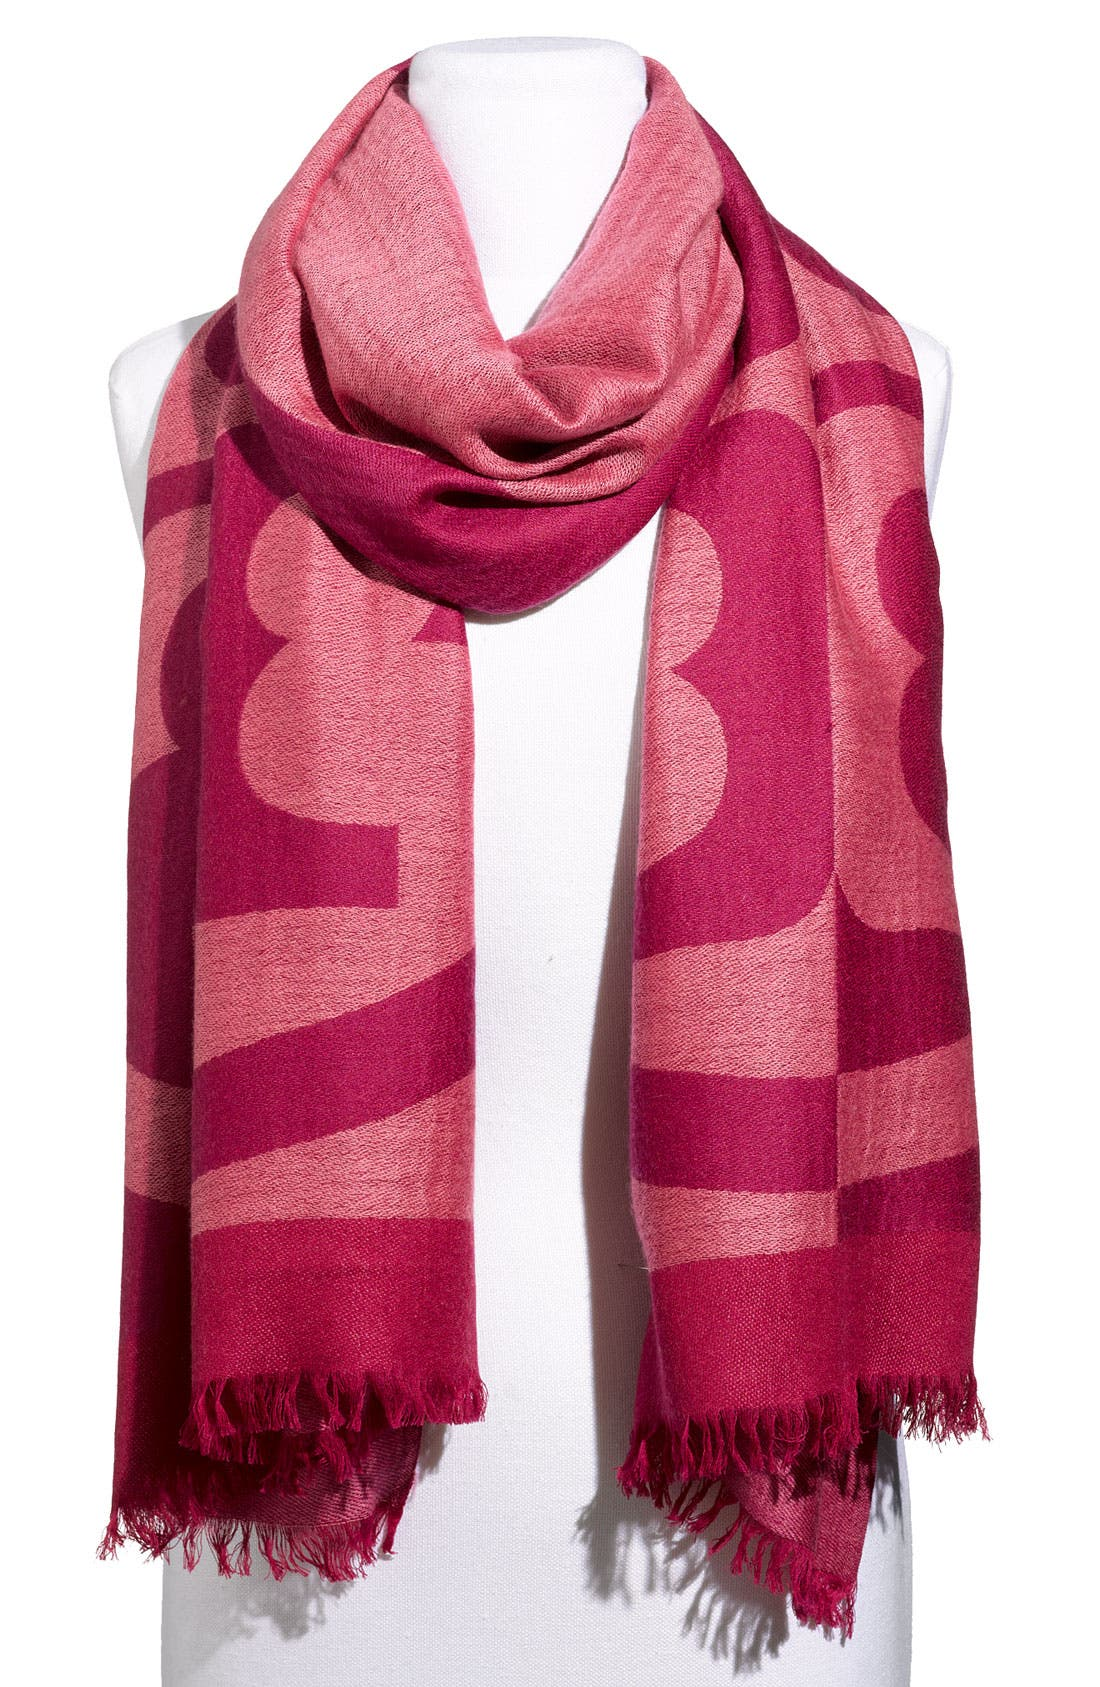 Alternate Image 1 Selected - Tory Burch 'Reva' Wool Scarf